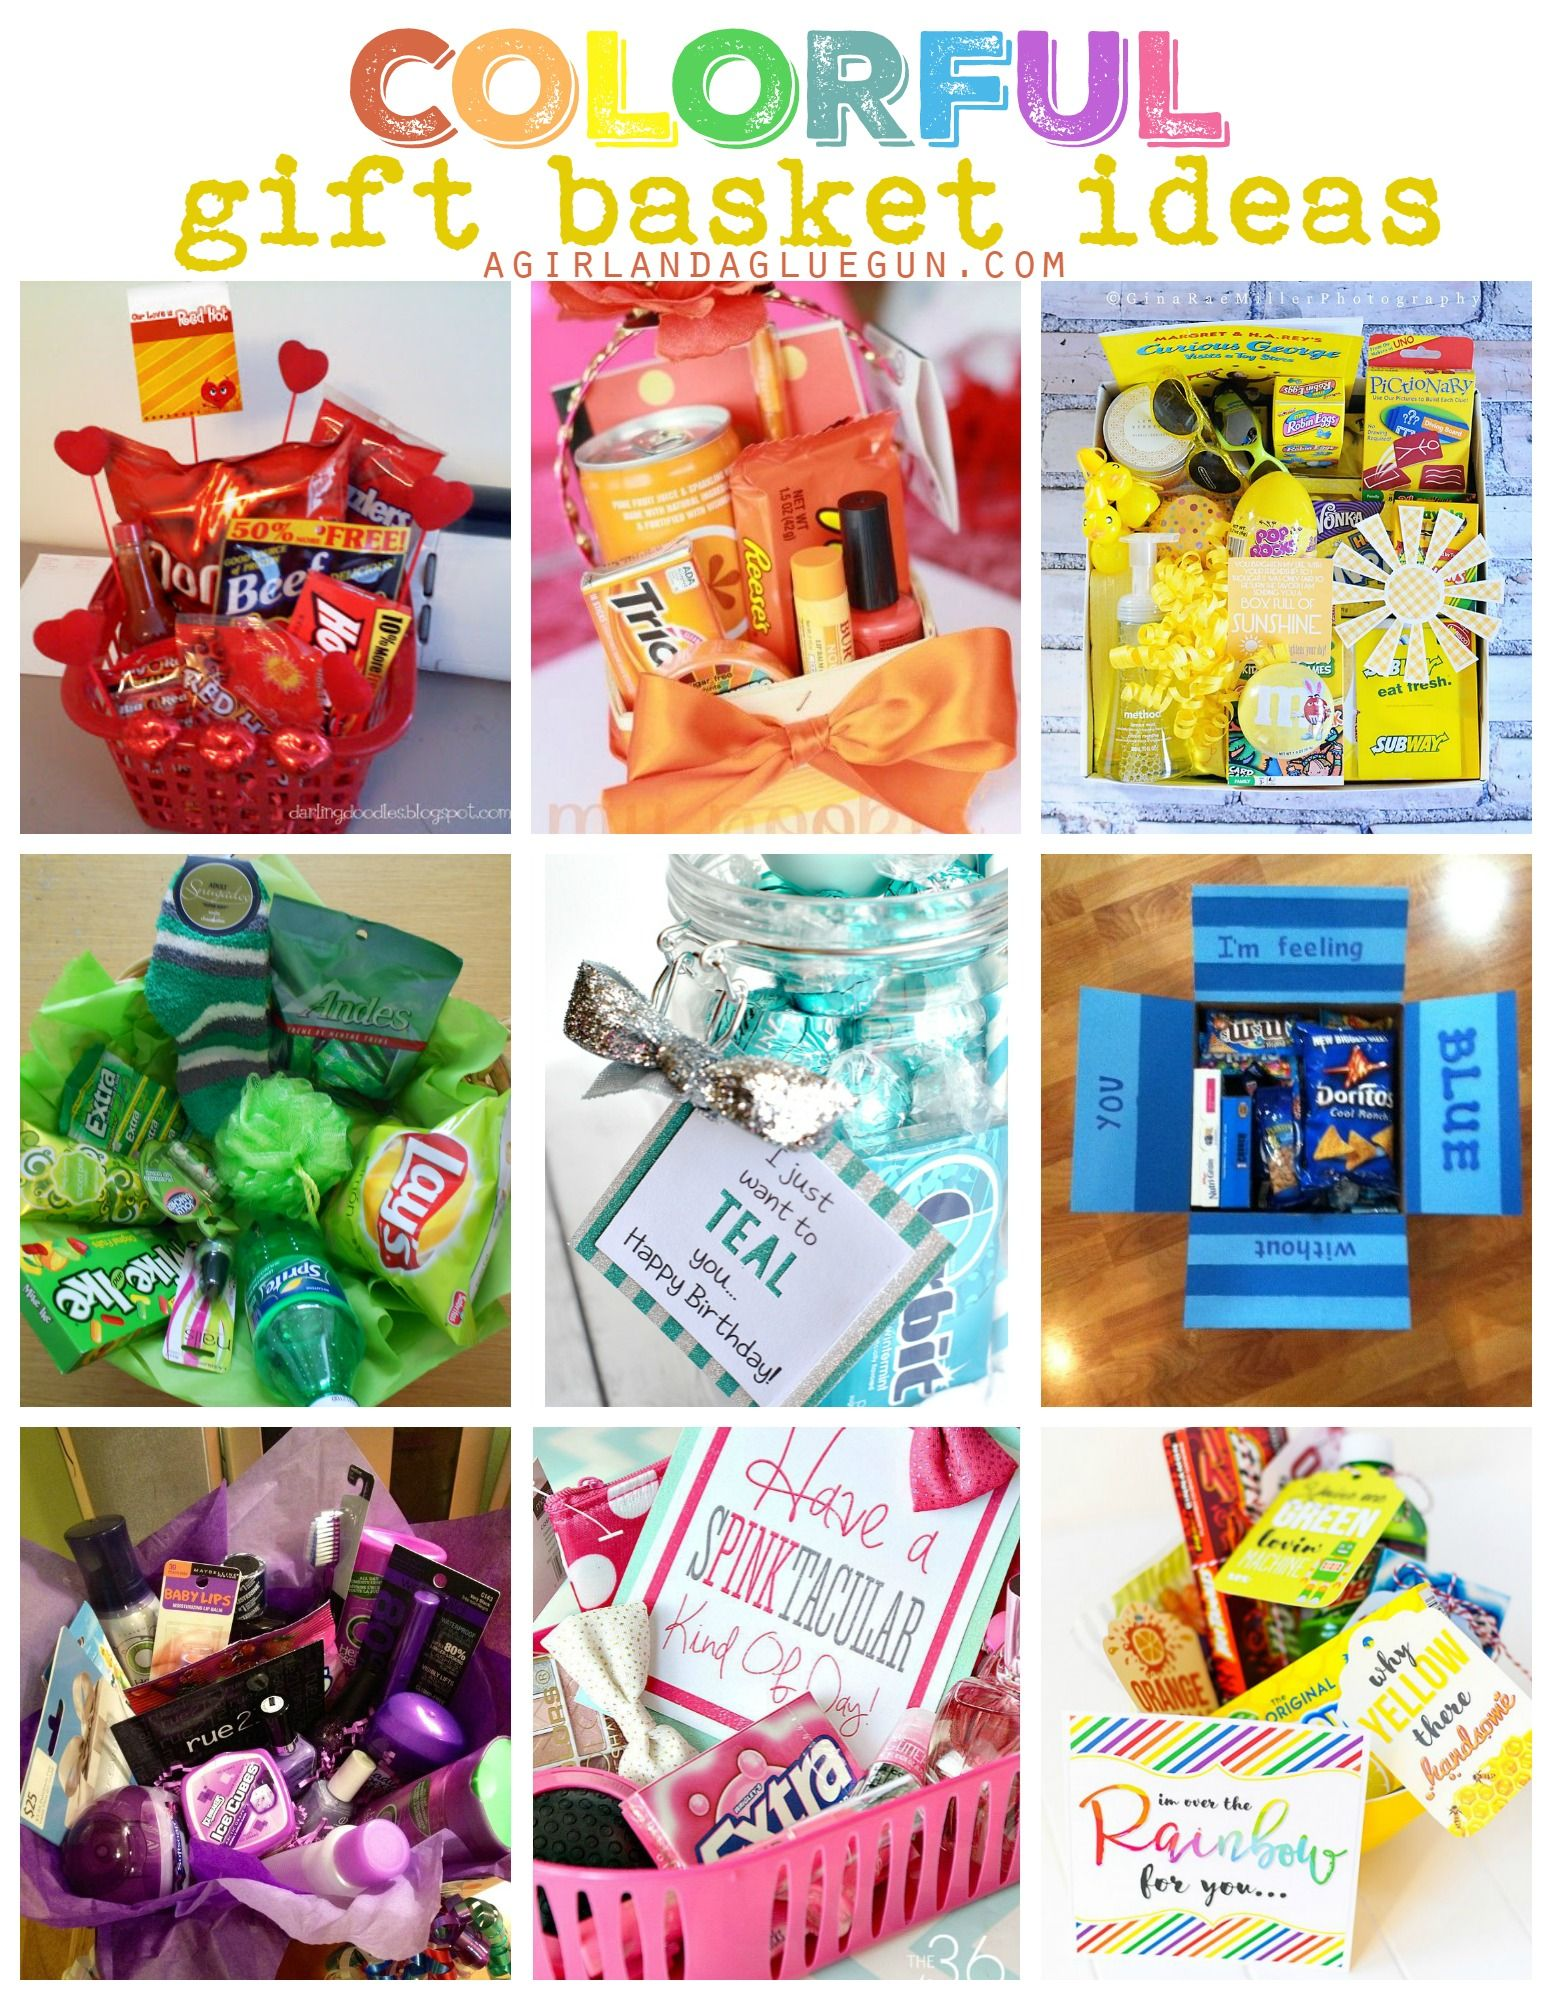 Colorful gift basket ideas! #boyfriendgiftbasket